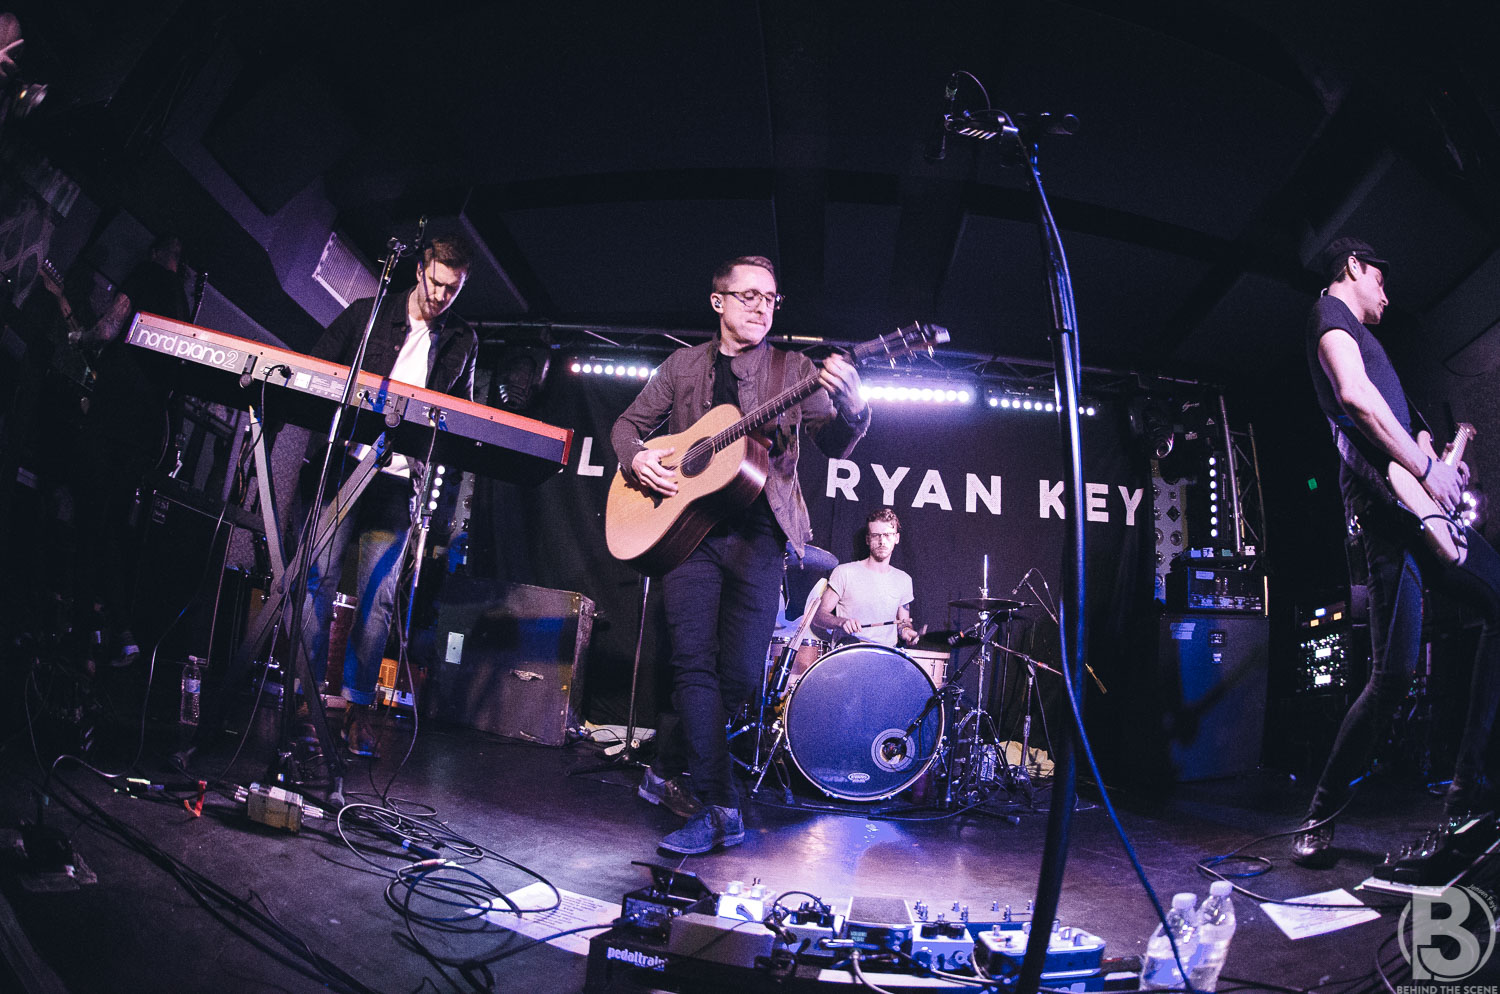 030119 William Ryan Key JF-4.jpg